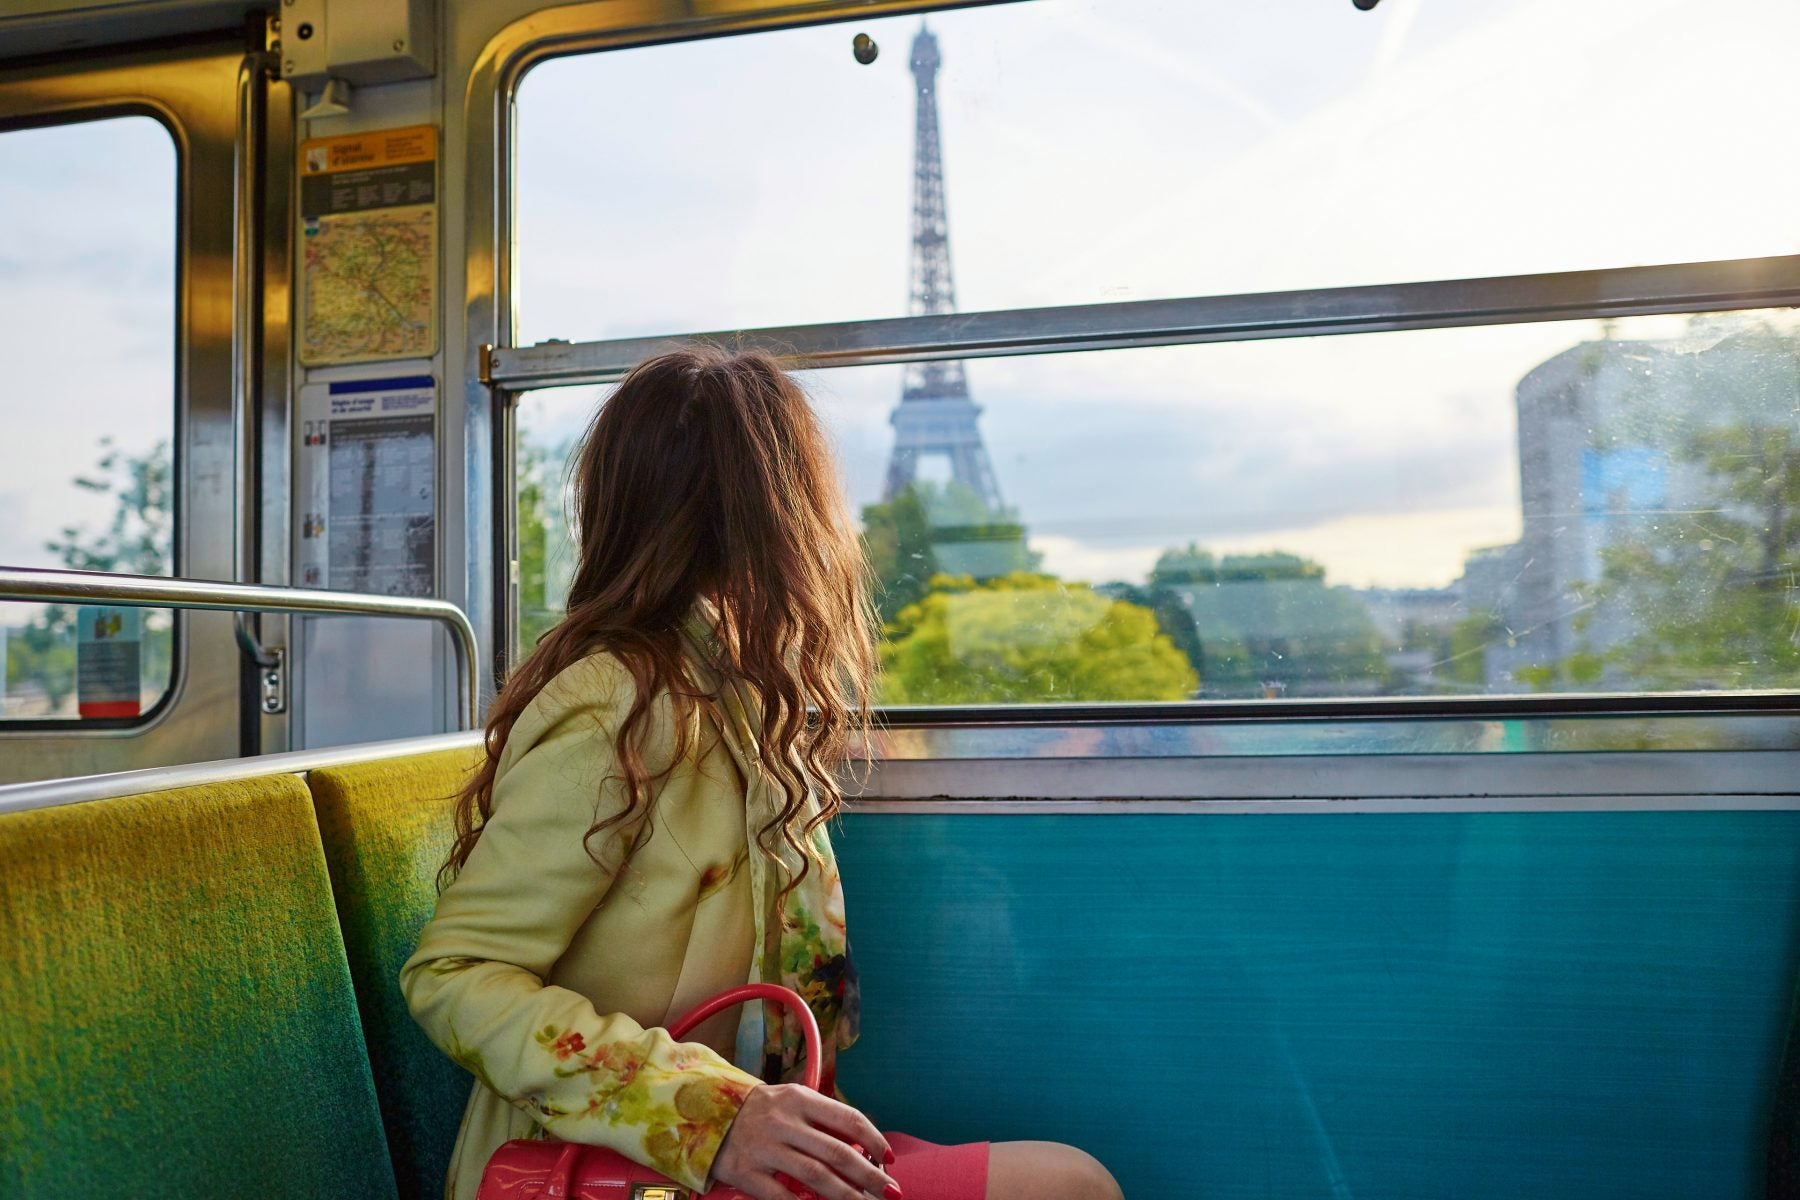 Woman on train in Paris